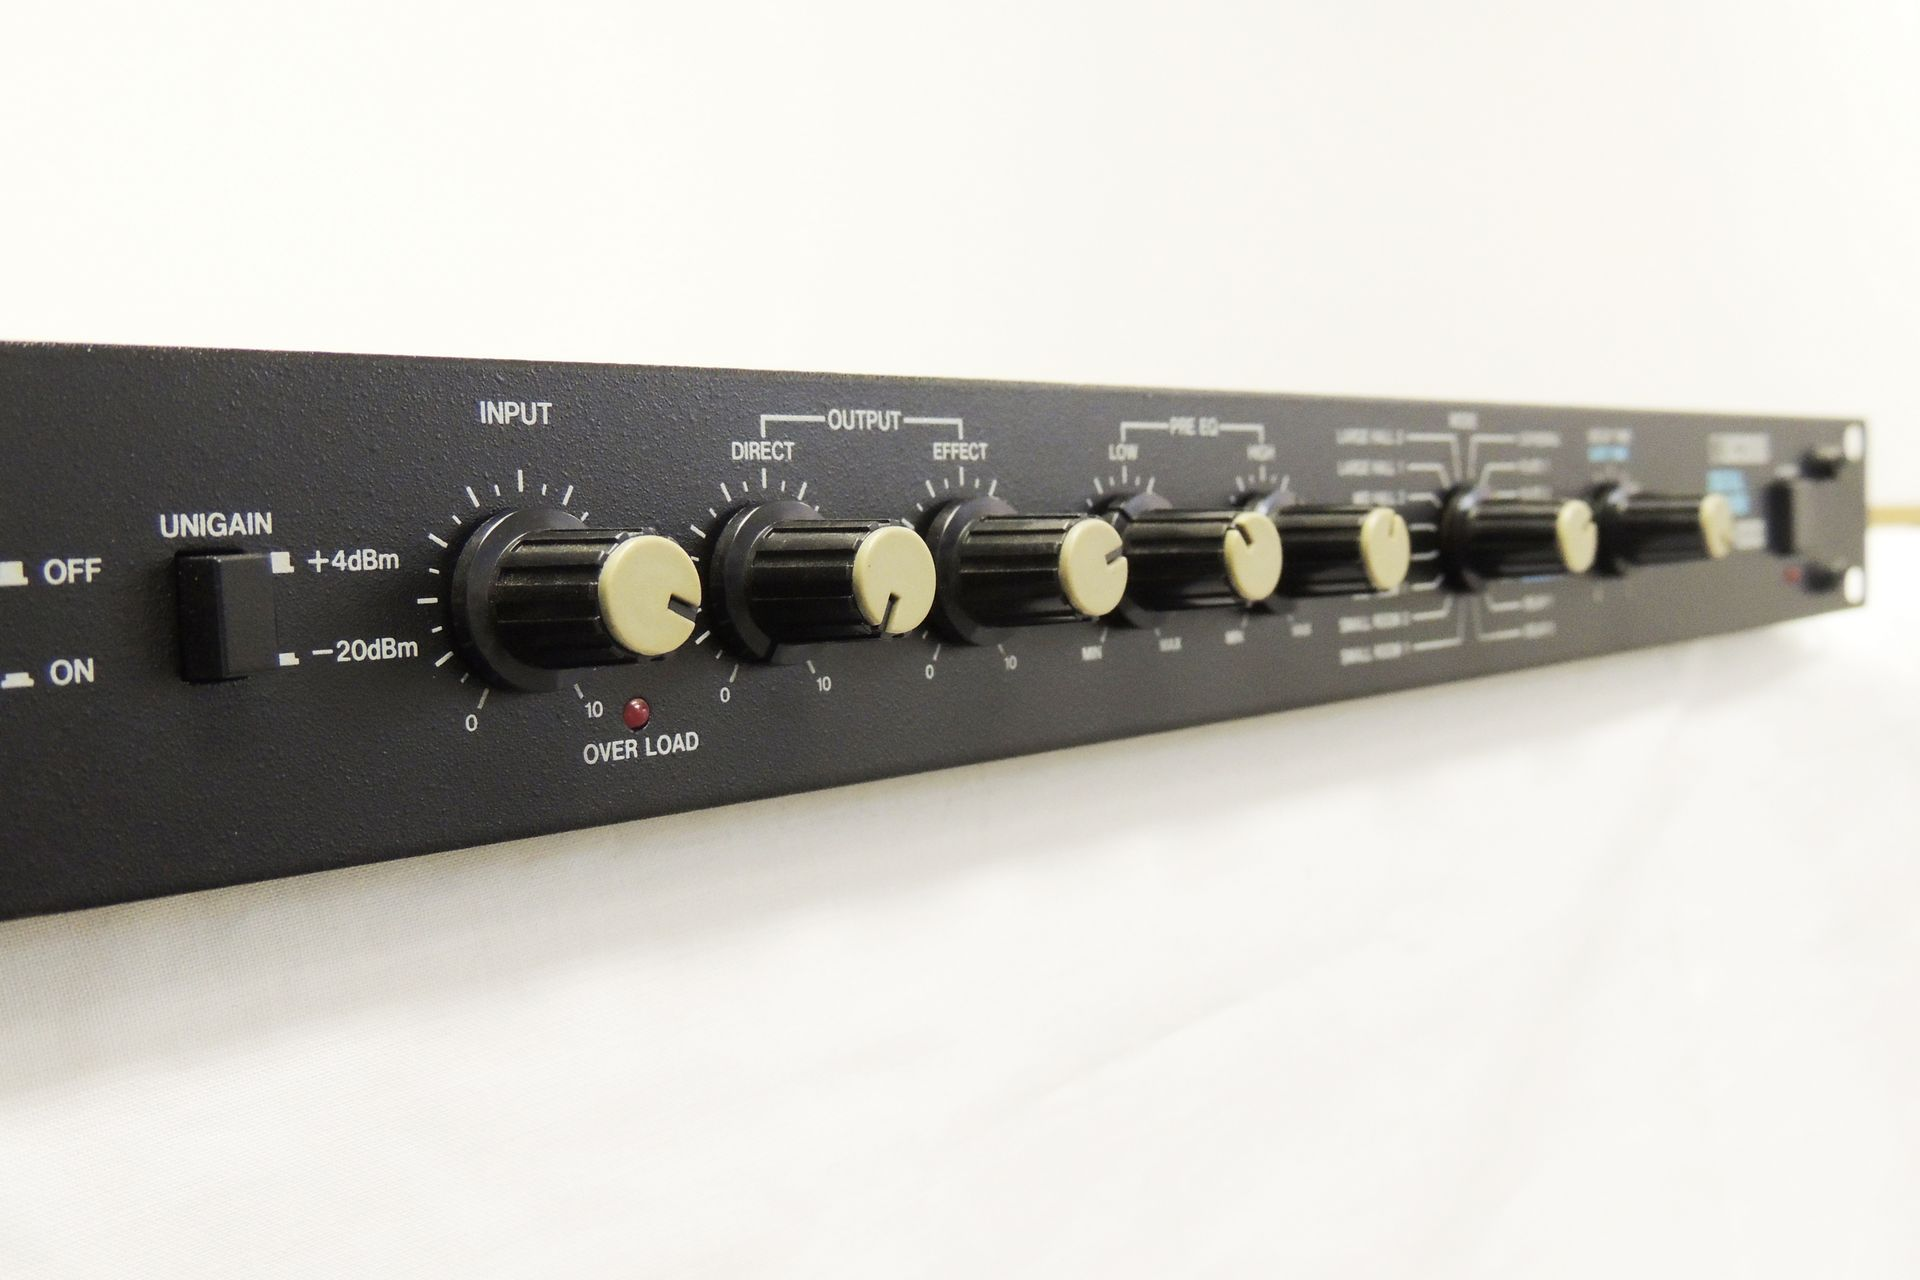 Vintage Boss RV-1000 multi-effects processor for sale at Plasma Music